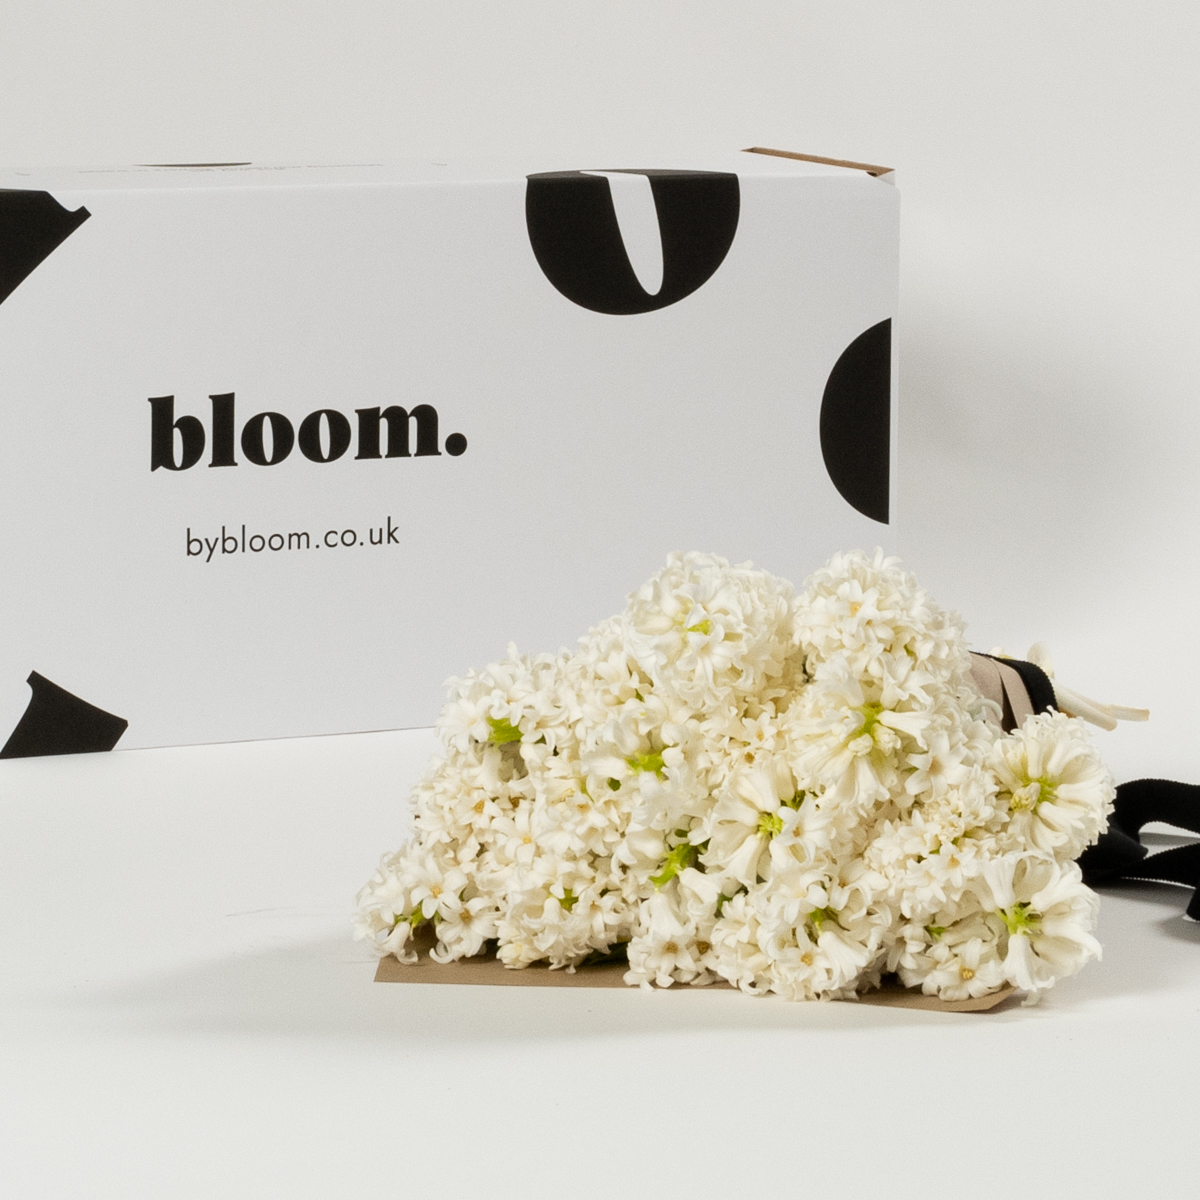 Bloom Flower Delivery | Arctic White Hyacinths